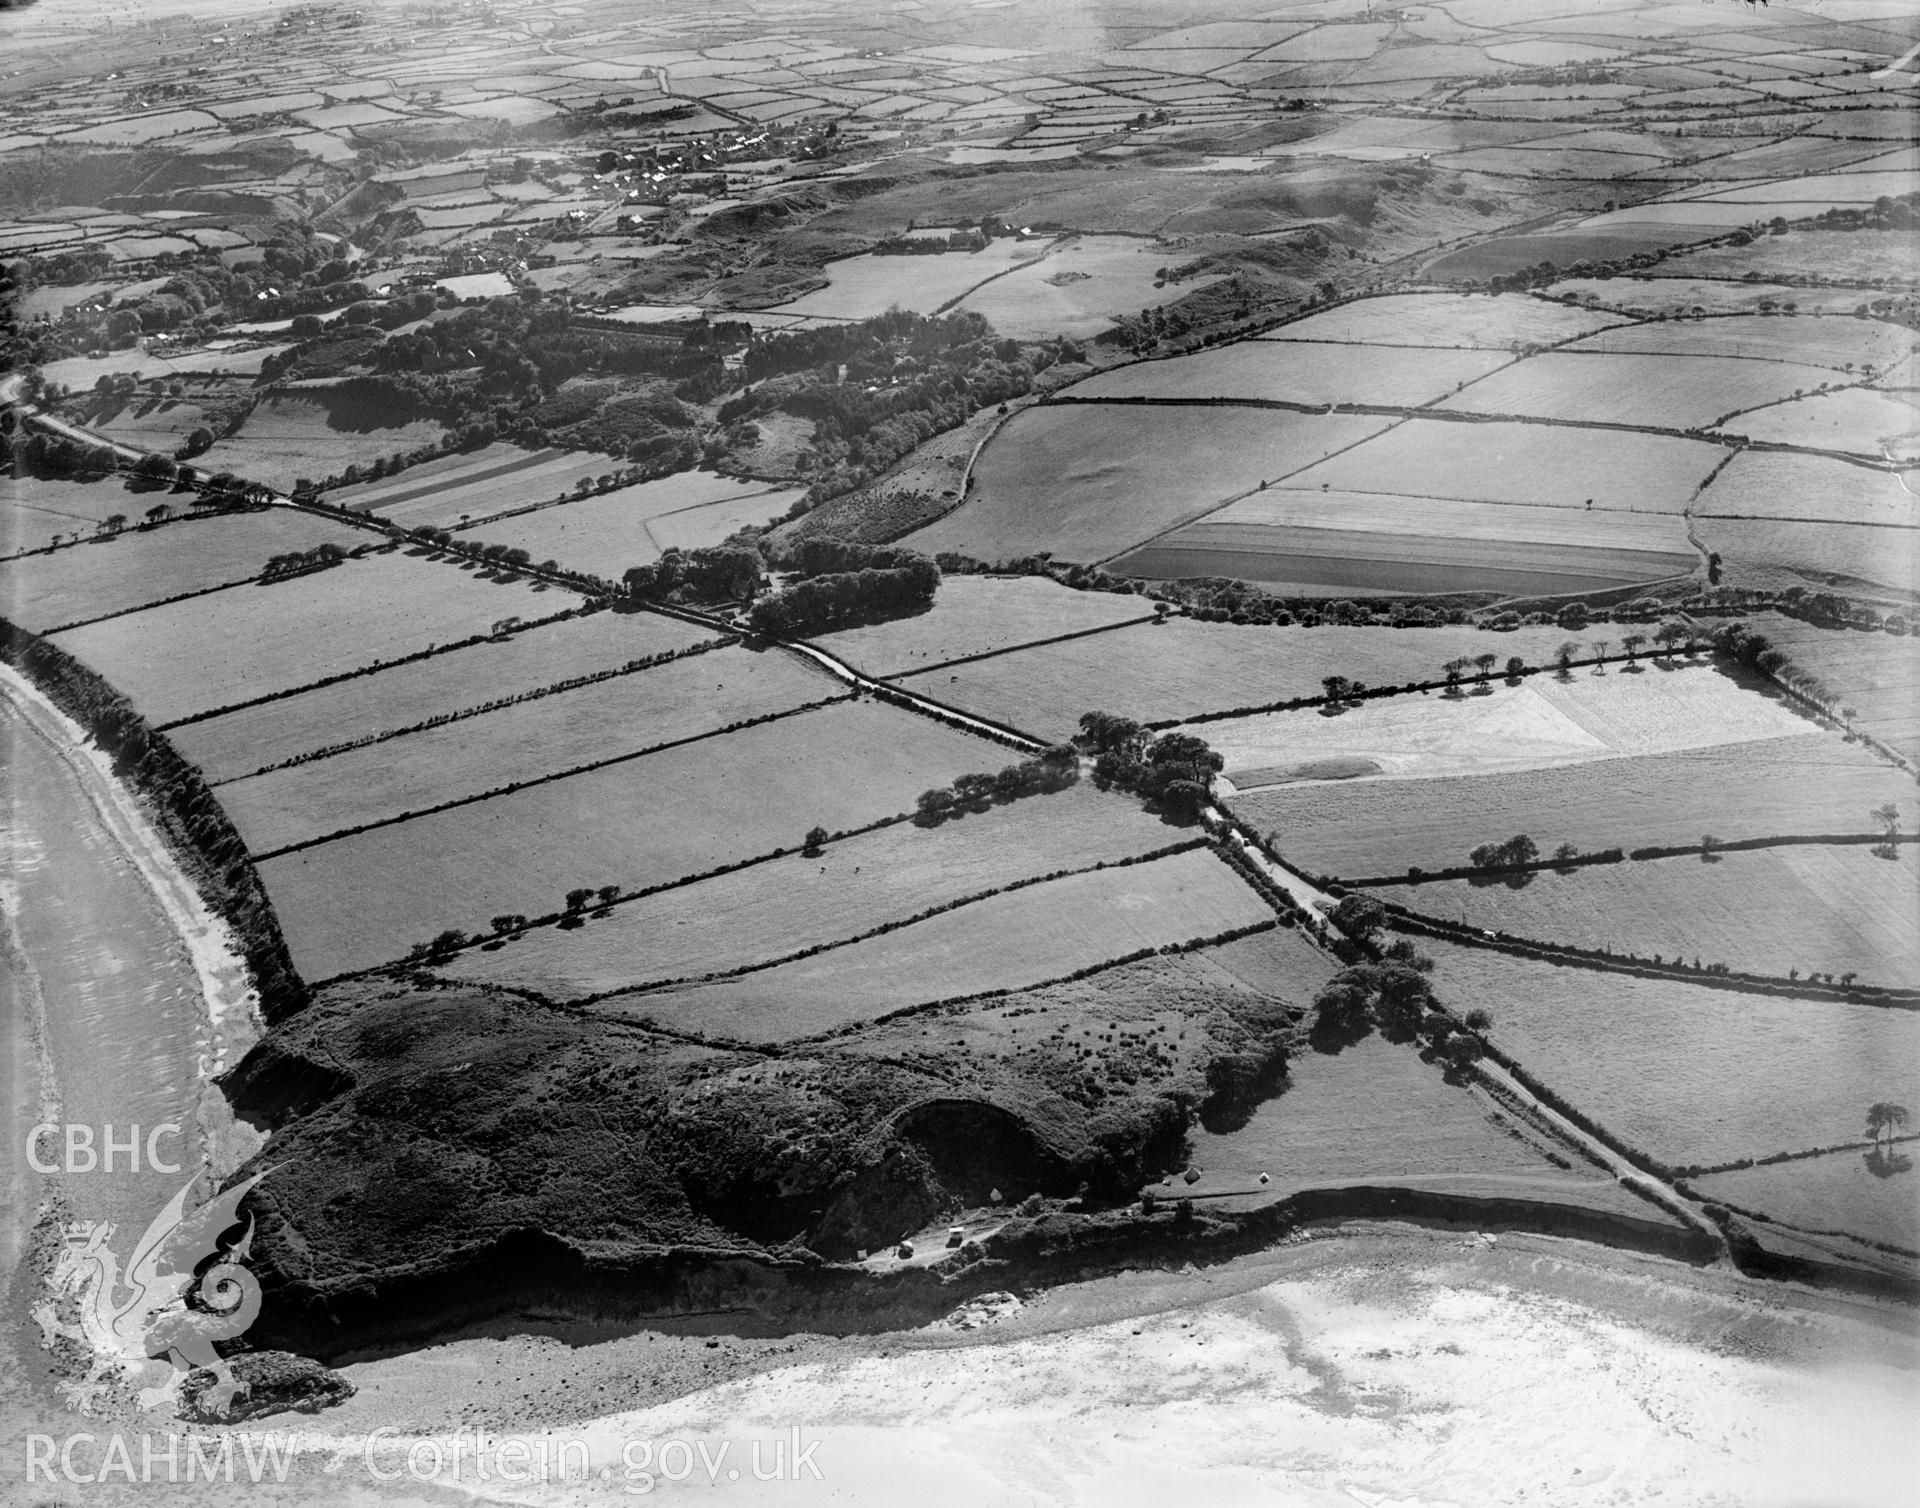 View of landscape (Penrhos and Carreg y Defaid) near Pwllheli, oblique aerial view. 5?x4? black and white glass plate negative.